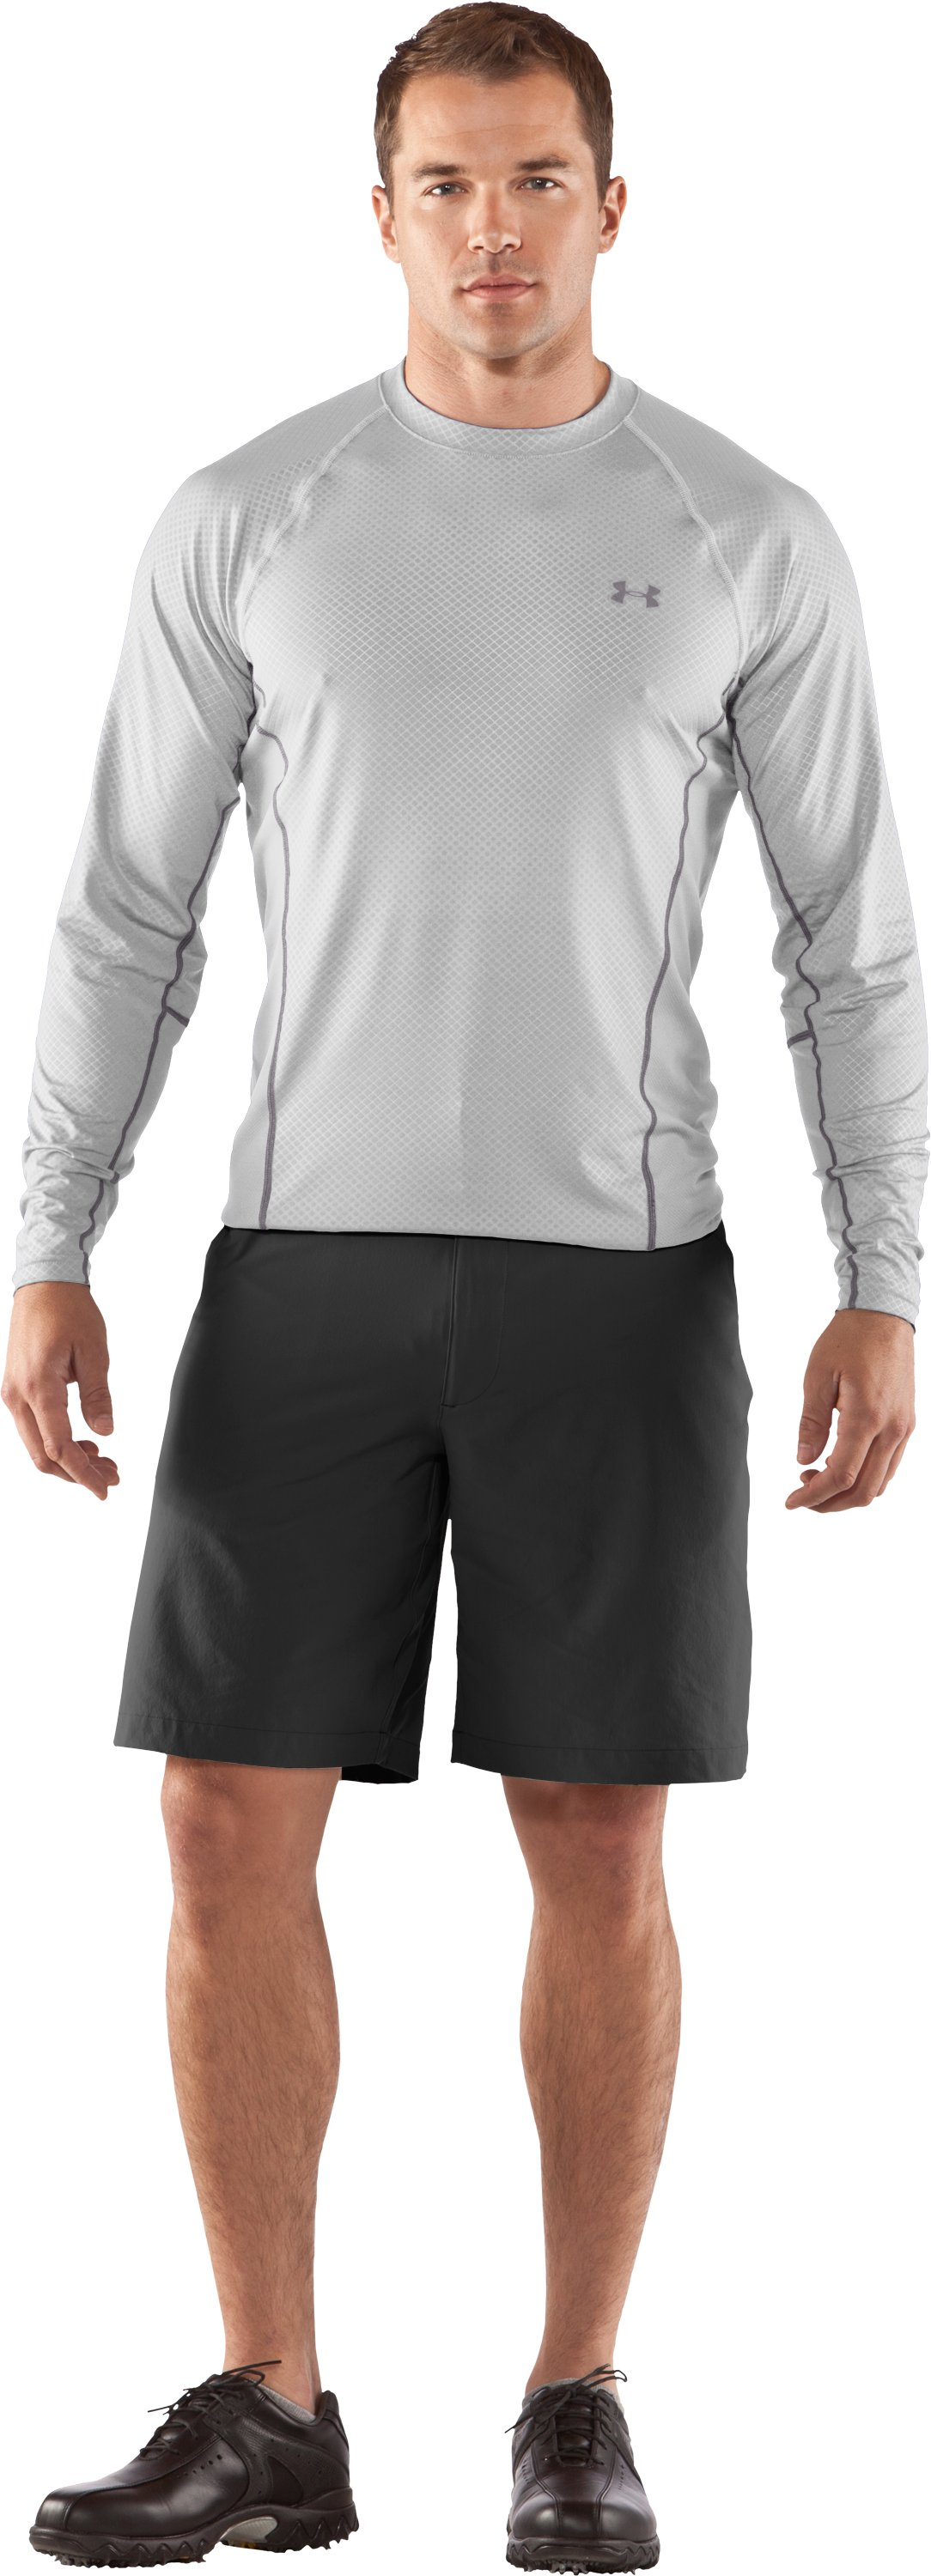 Men's AllSeasonGear® Golf Long Sleeve Shirt, White, Front